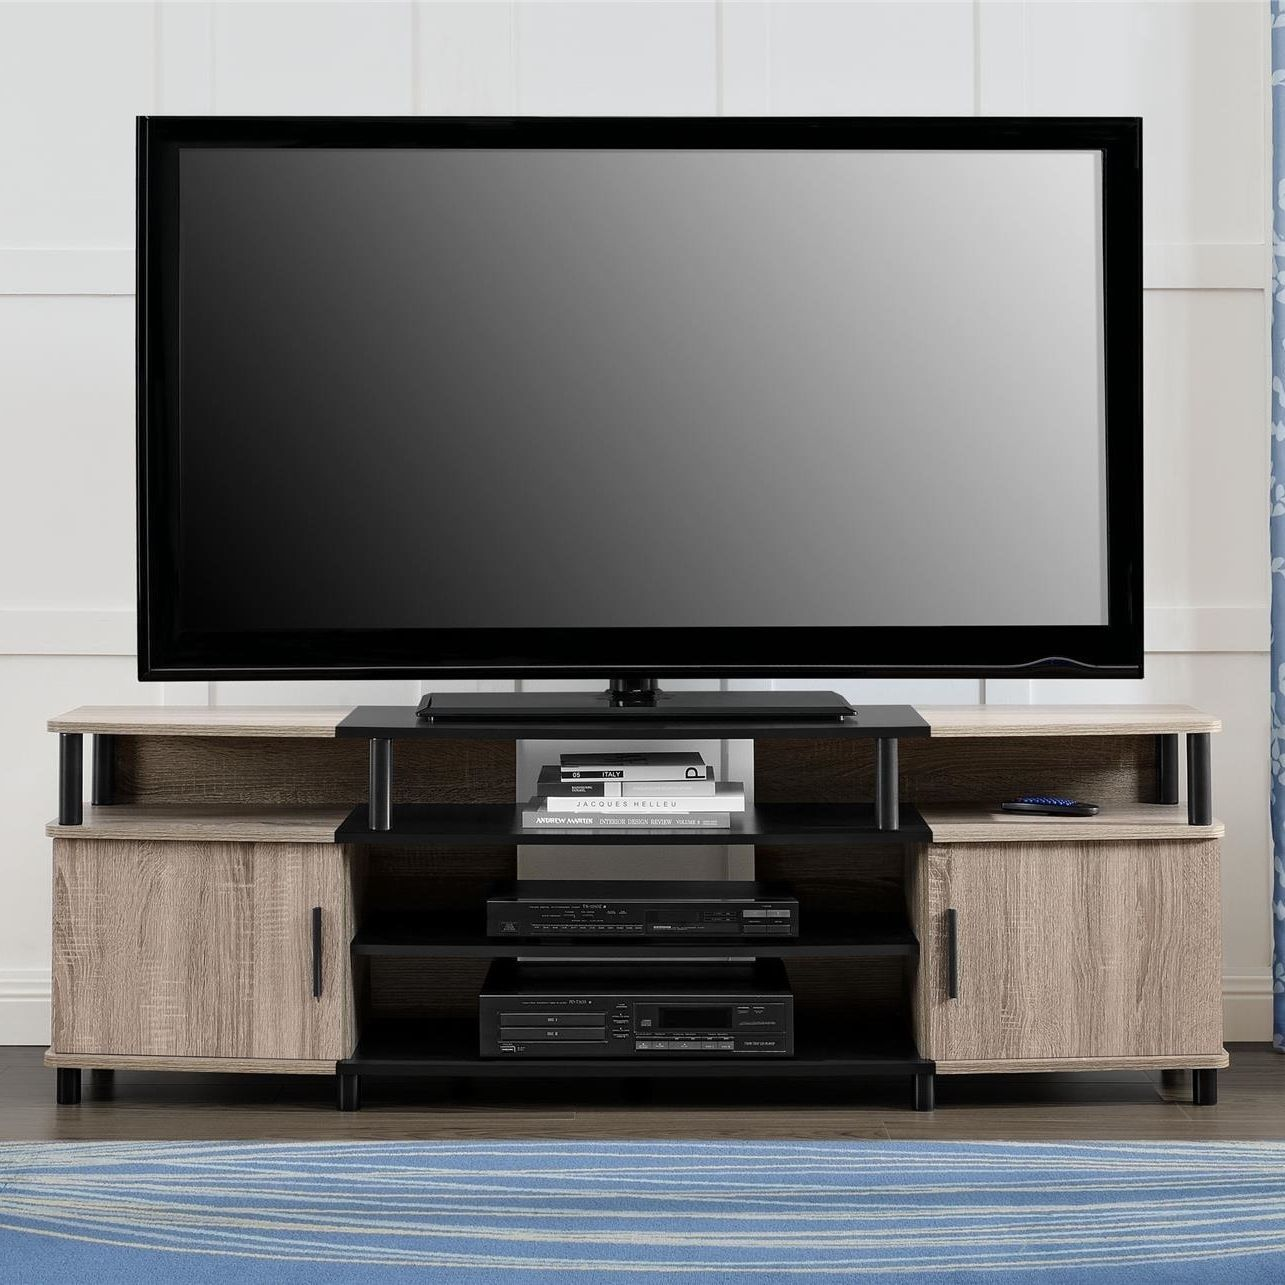 Altra dexter inch tv stand overstock shopping great deals on